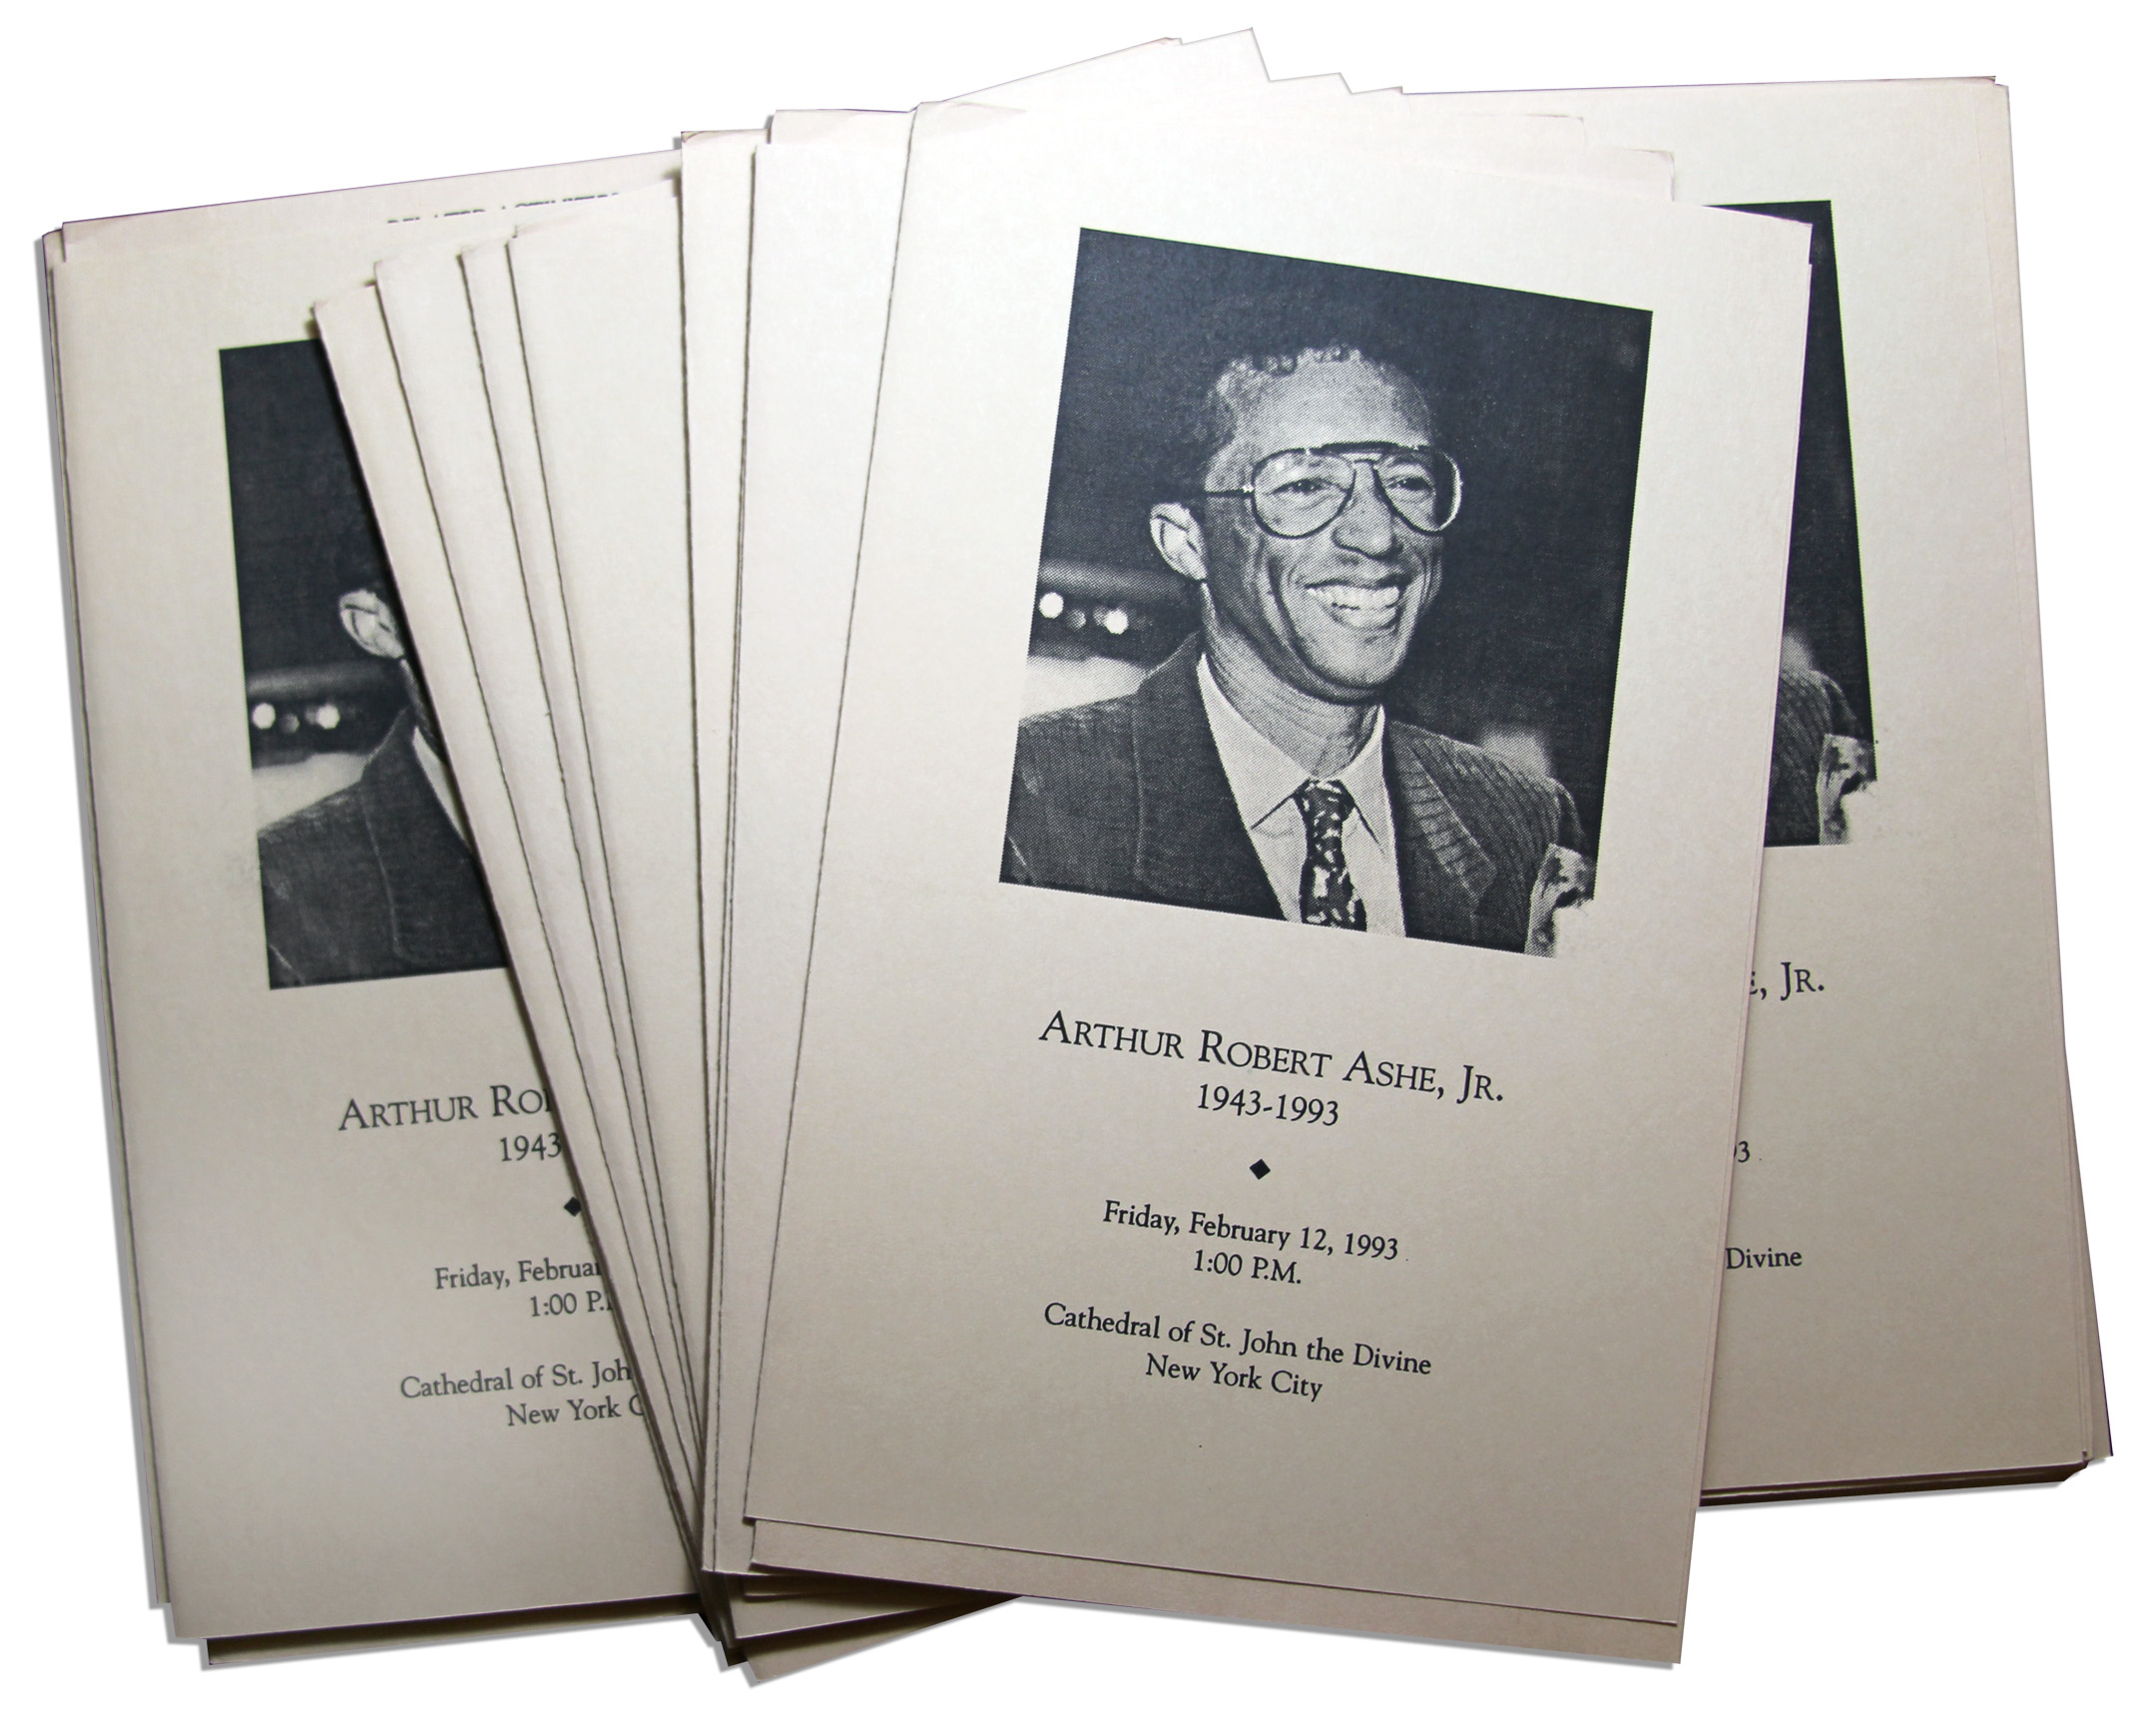 a life and career of arthur ashe I looked up tennis history online and found the best way to do this was by writing a paper concerning the life, career, and impact that one man, arthur ashe, has had on tennis ashe was a skinny african american kid who loved reading books and listening to music.